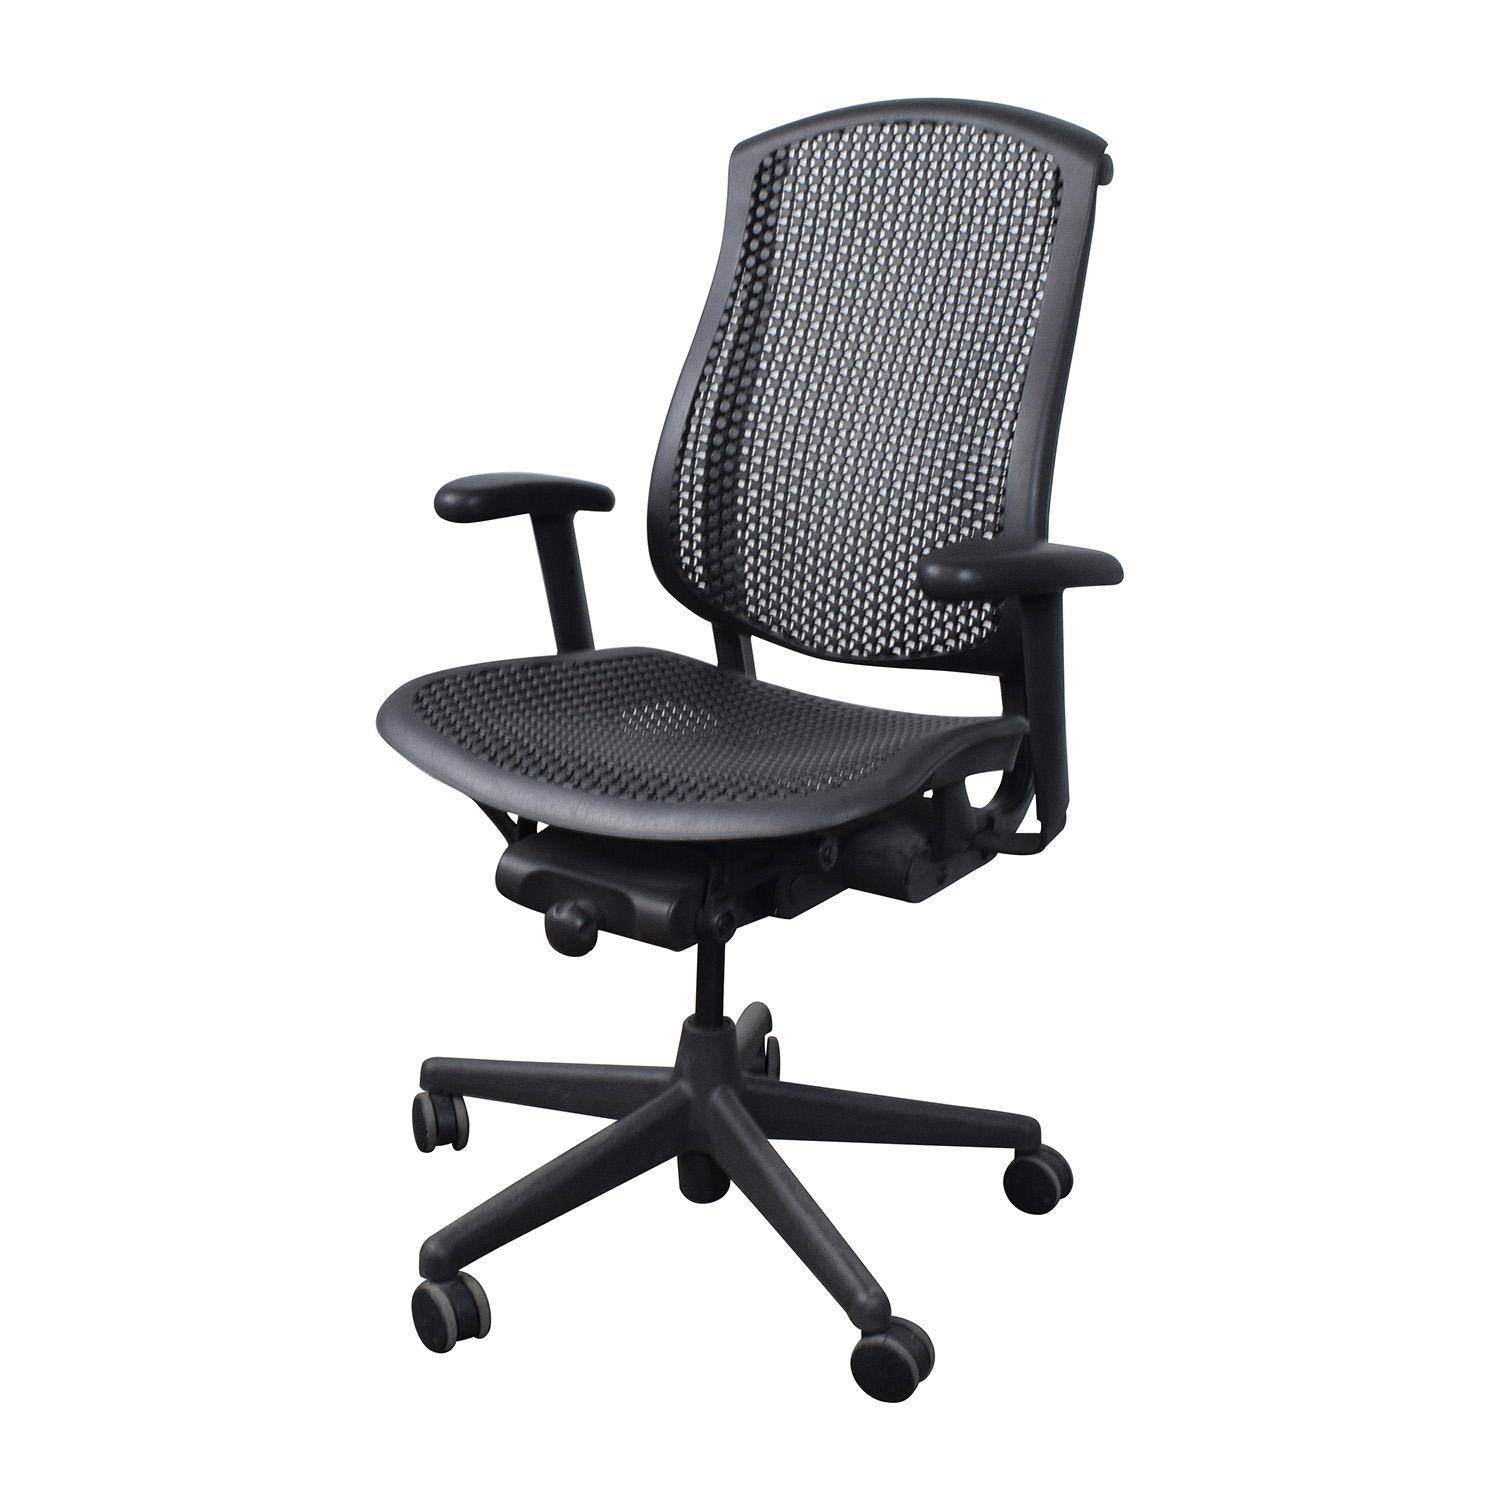 Herman Miller Chairs Used Herman Miller Office Desk Chair Grey Aeron Size B Wlumbar Used Herman